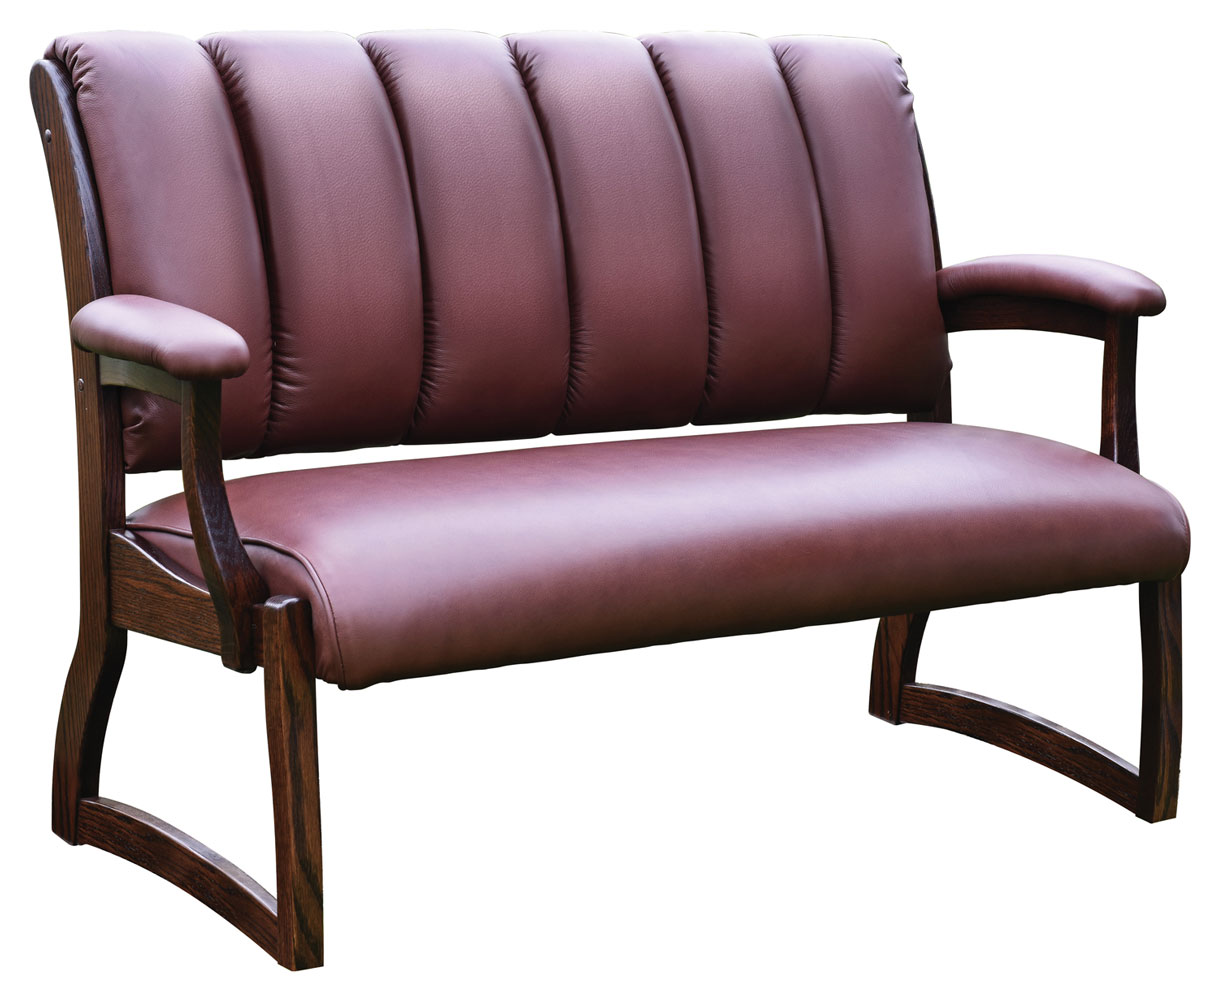 Edelweiss Bench shown Red Oak with OCS-228 Tobacco Stain with Pecan Leather